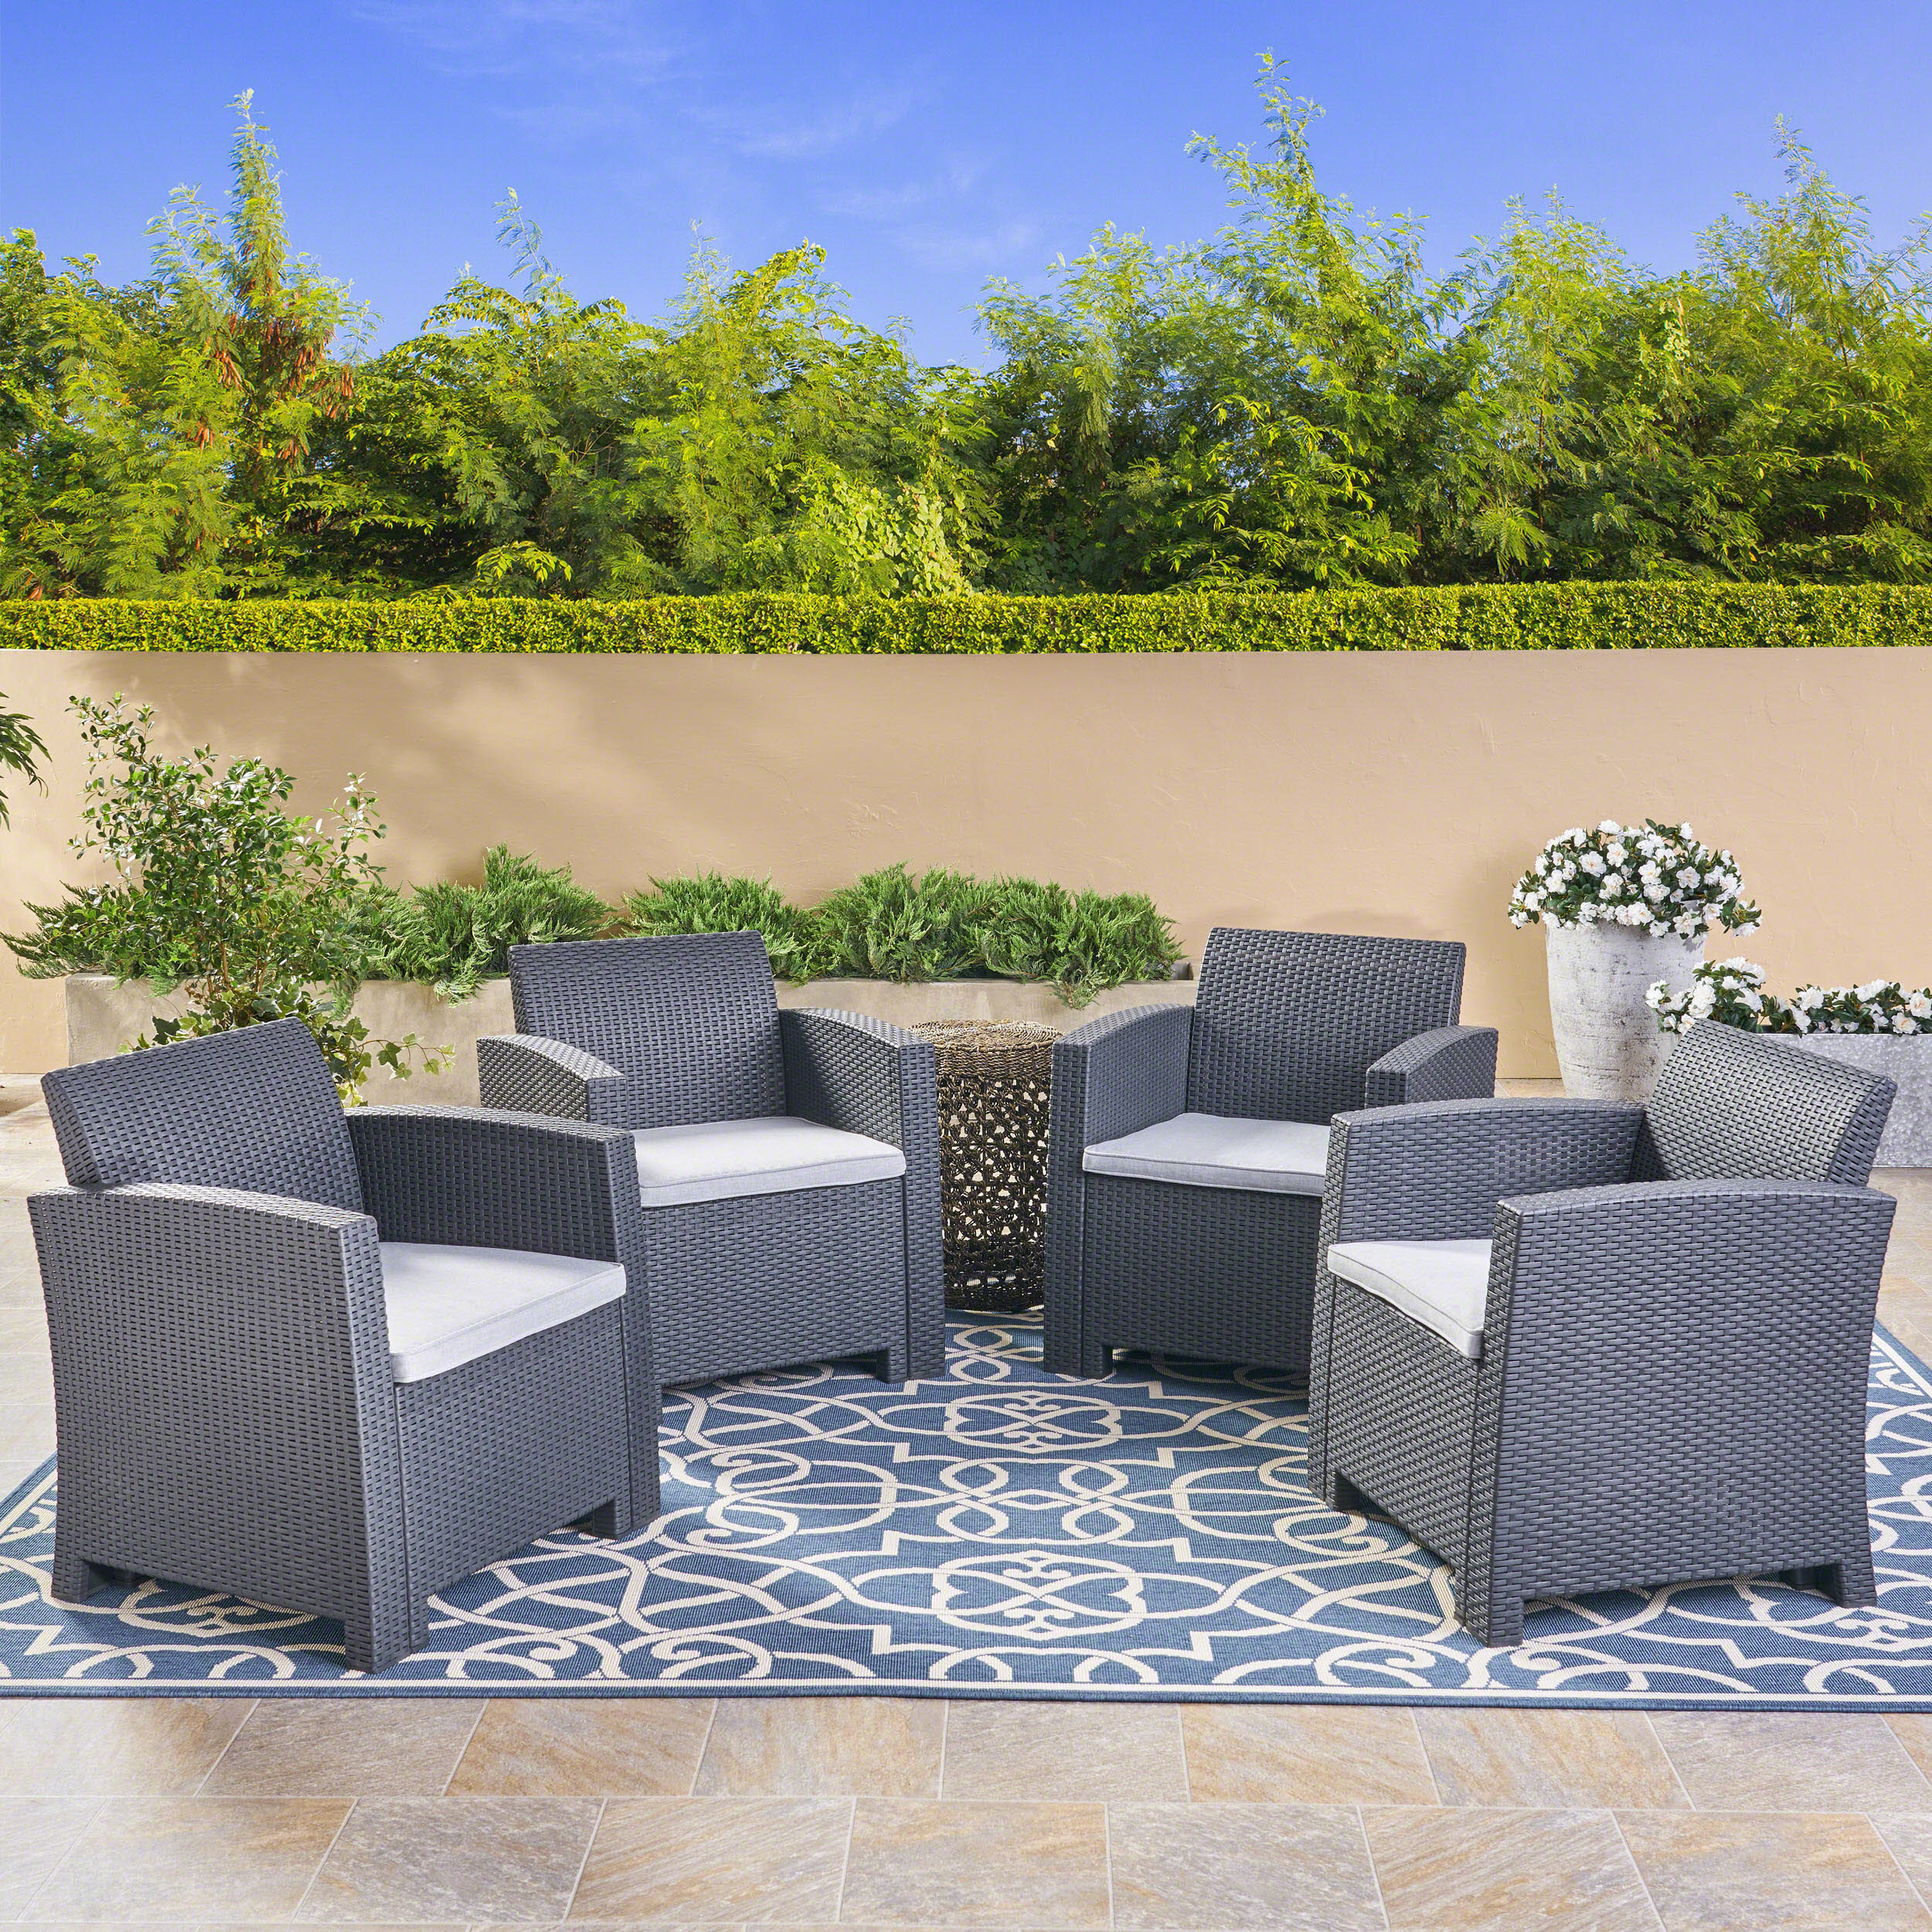 Noble House Sorianno Outdoor Charcoal Faux Wicker Club Chairs with Cushions,Grey